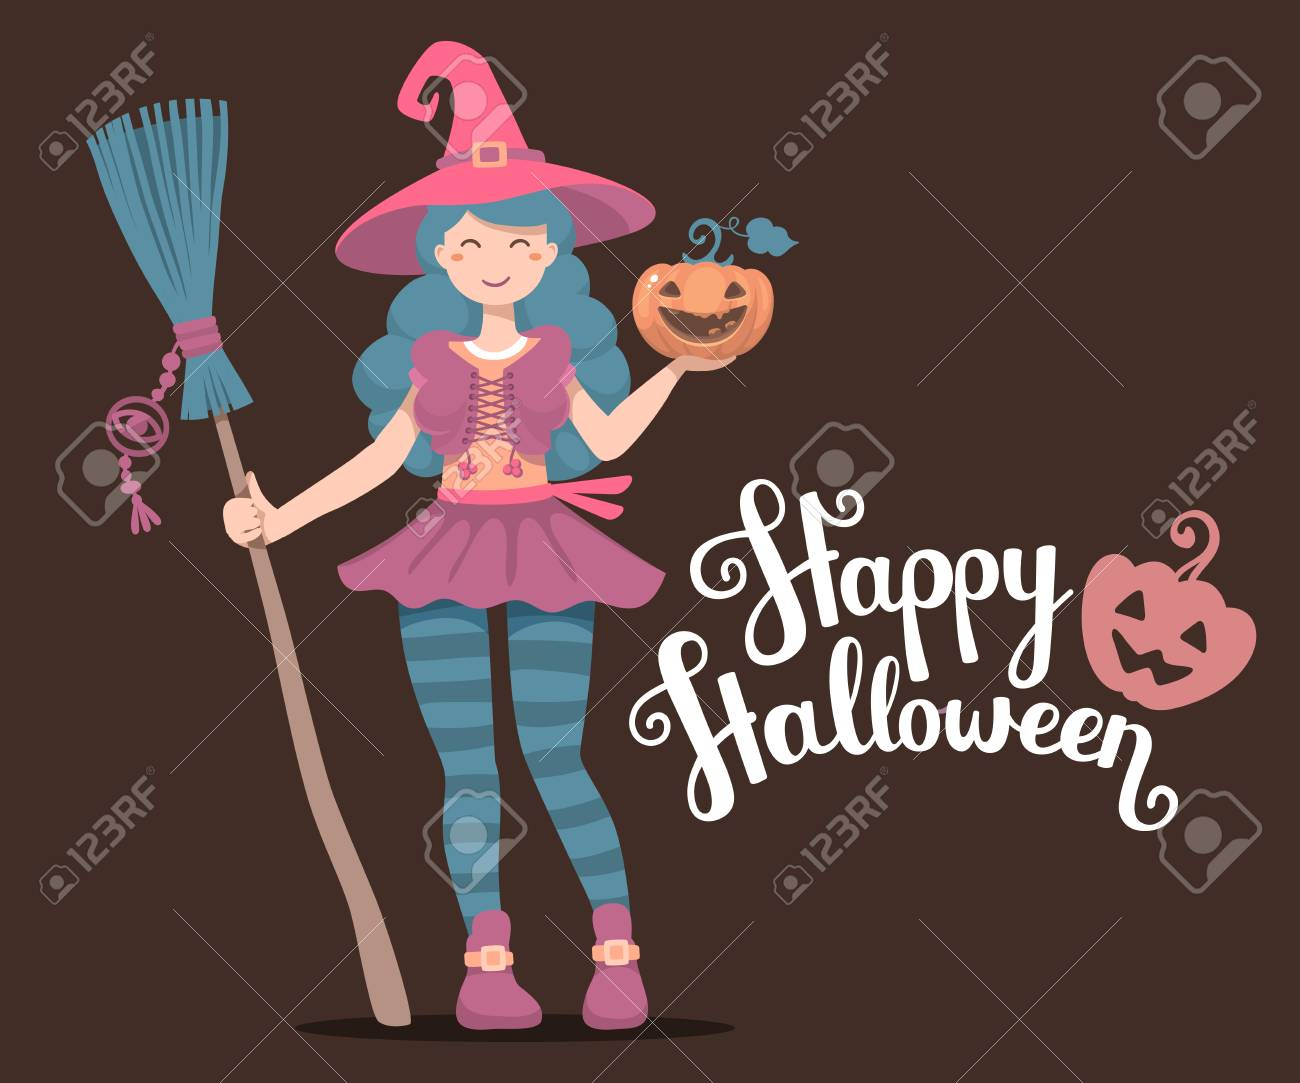 Vector   Vector Colorful Halloween Illustration Of Witch Character With  Broom, Hat, Pumpkin Wishes Happy Halloween On Dark Background.